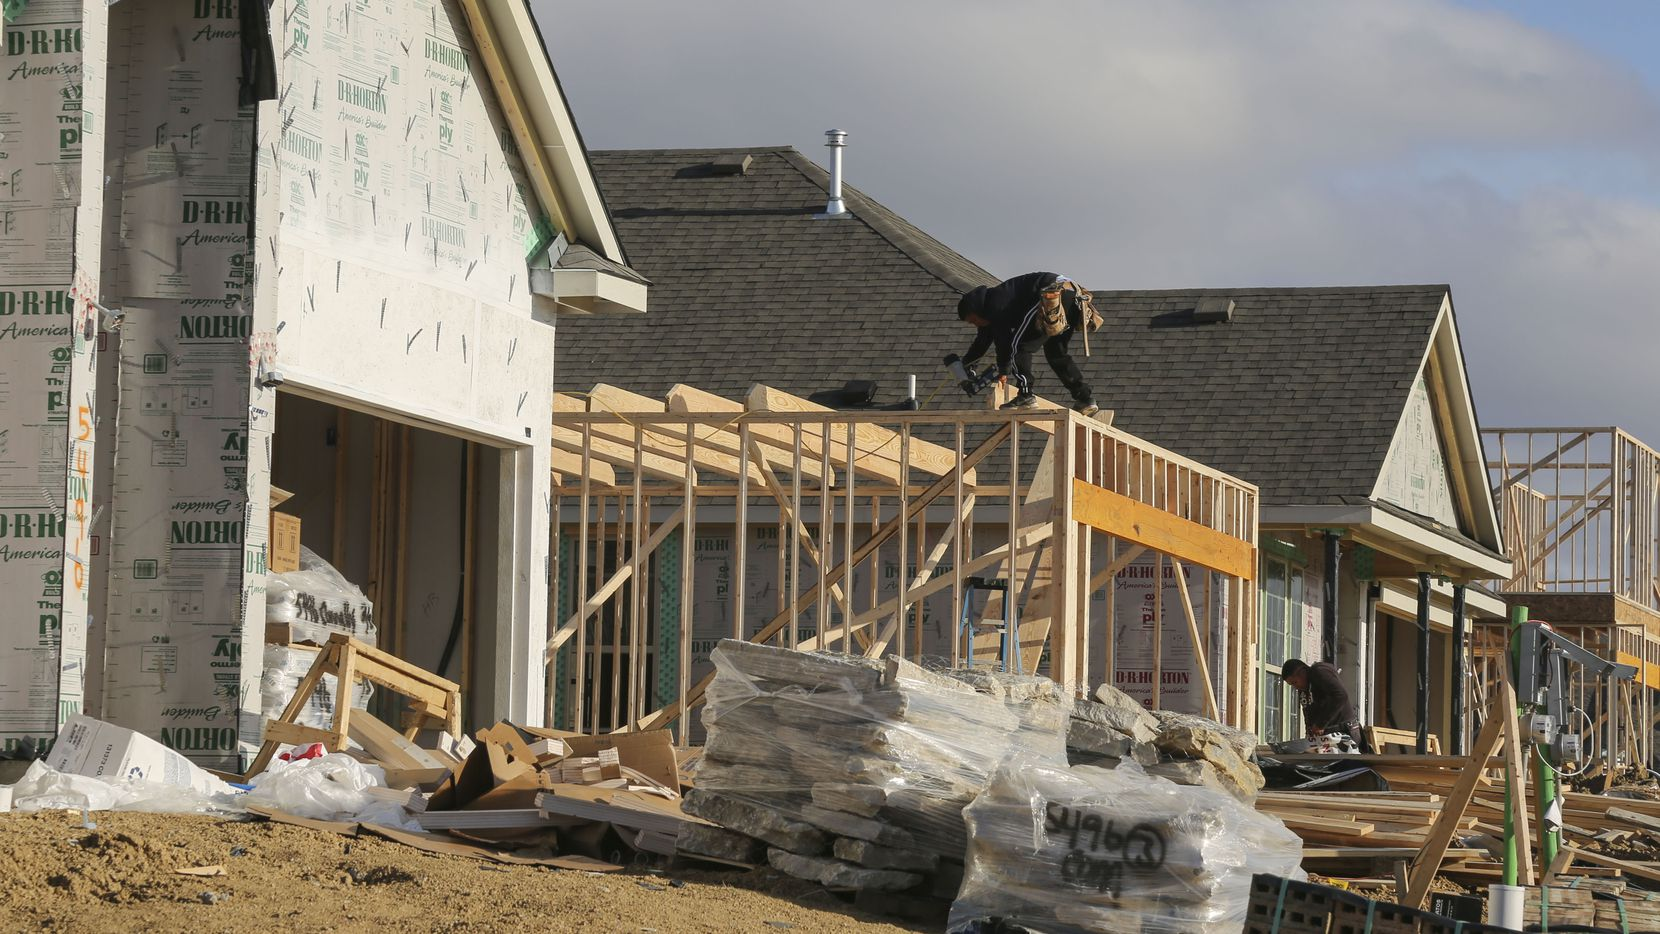 Home starts are expected to rise this year and in 2020 but still won't meet demand.